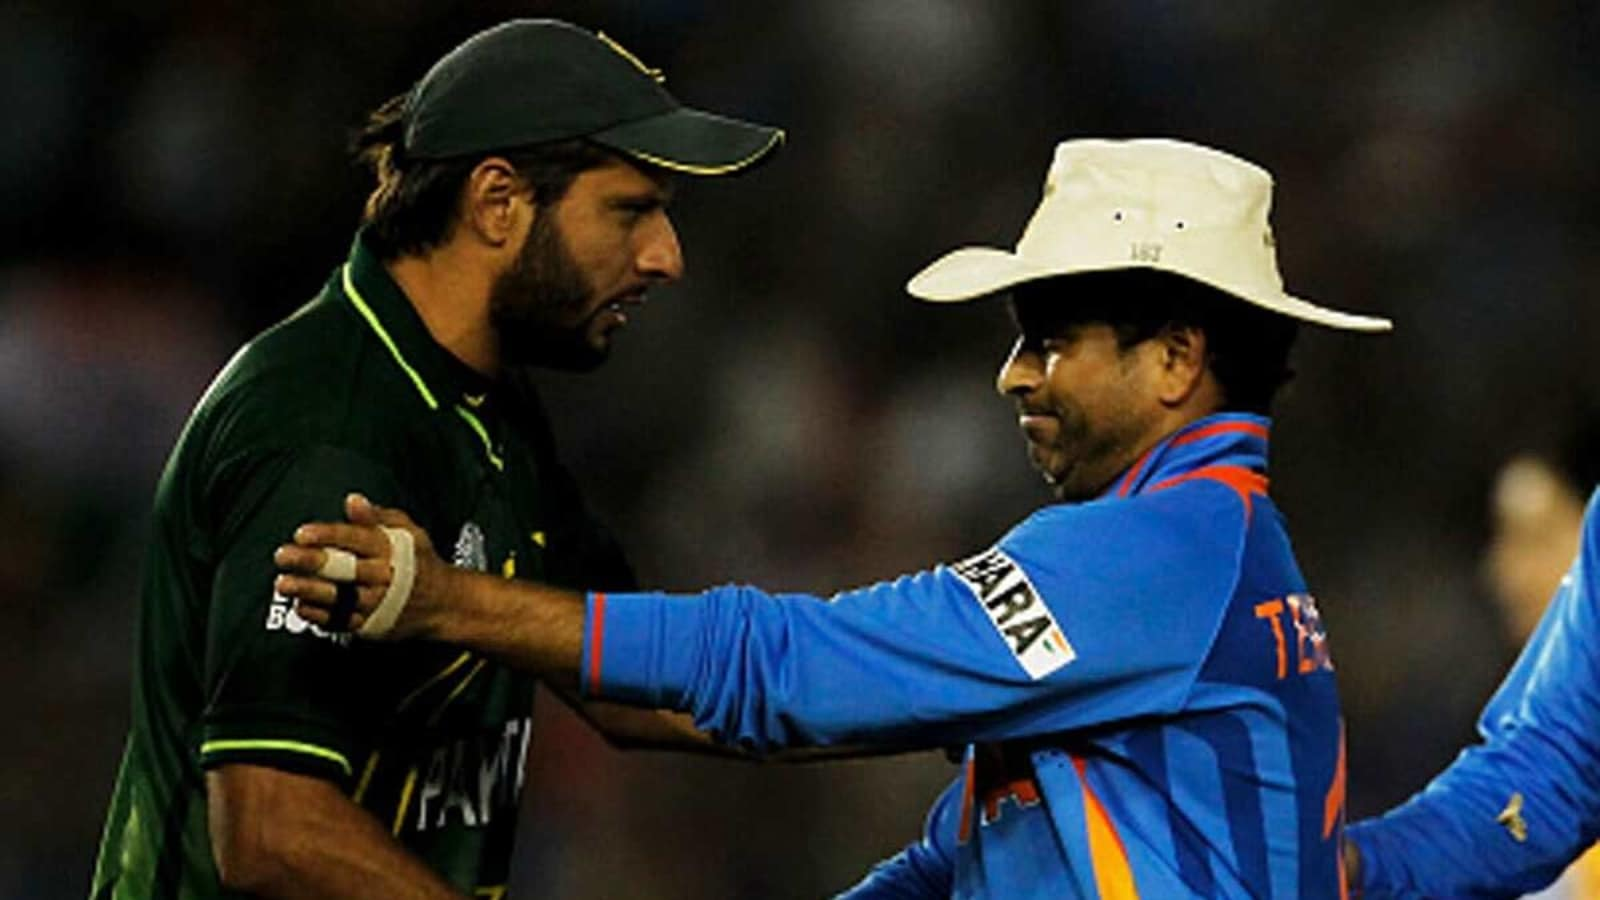 After Wasim Akram, Shahid Afridi sends his best wishes to hospitalised Sachin Tendulkar - Hindustan Times